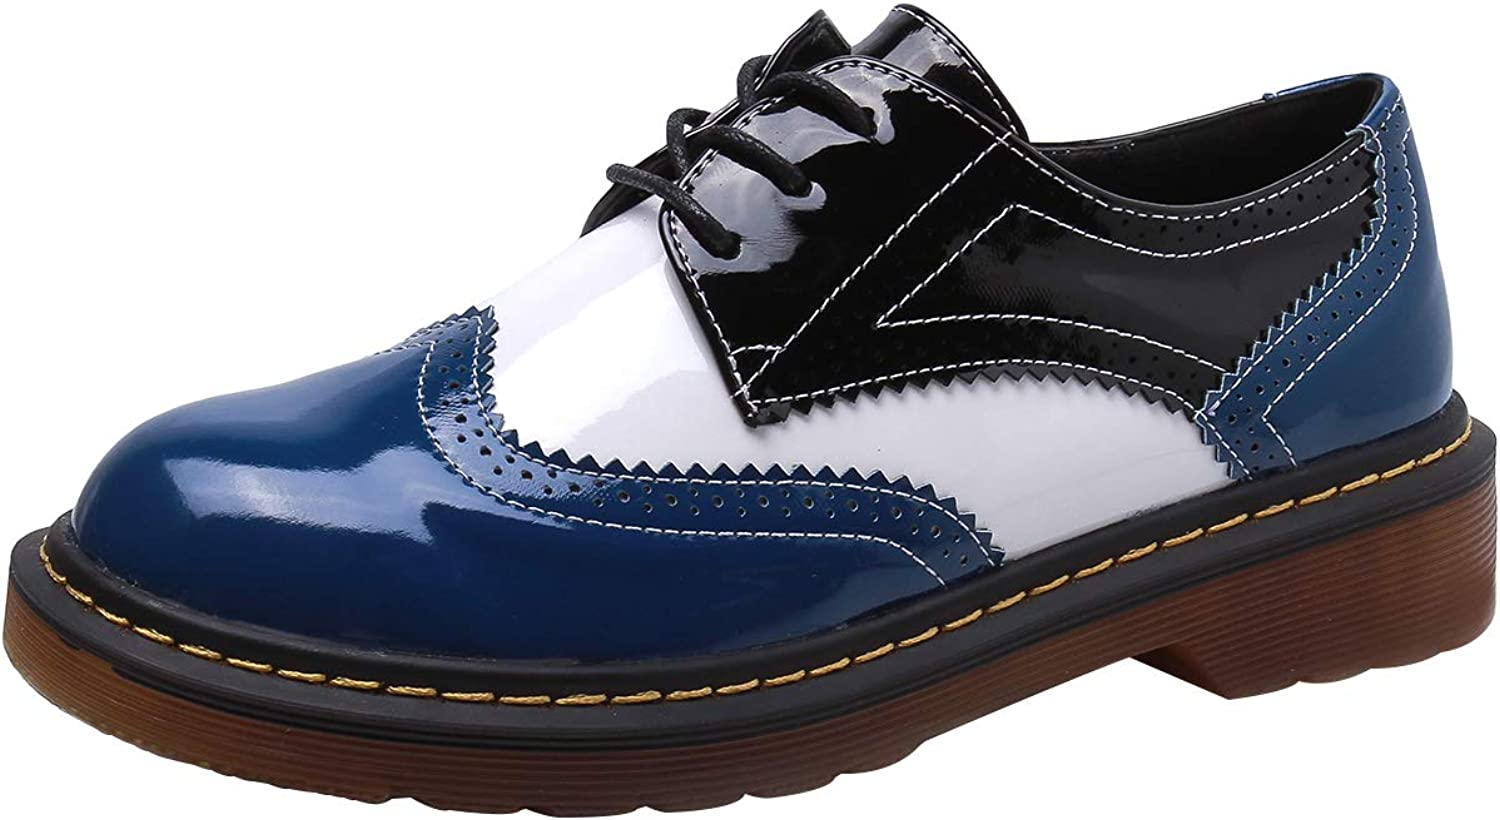 Sekesin Womens Lace-up Wingtip Patent Leather Flat Oxford shoes Derby Brogues